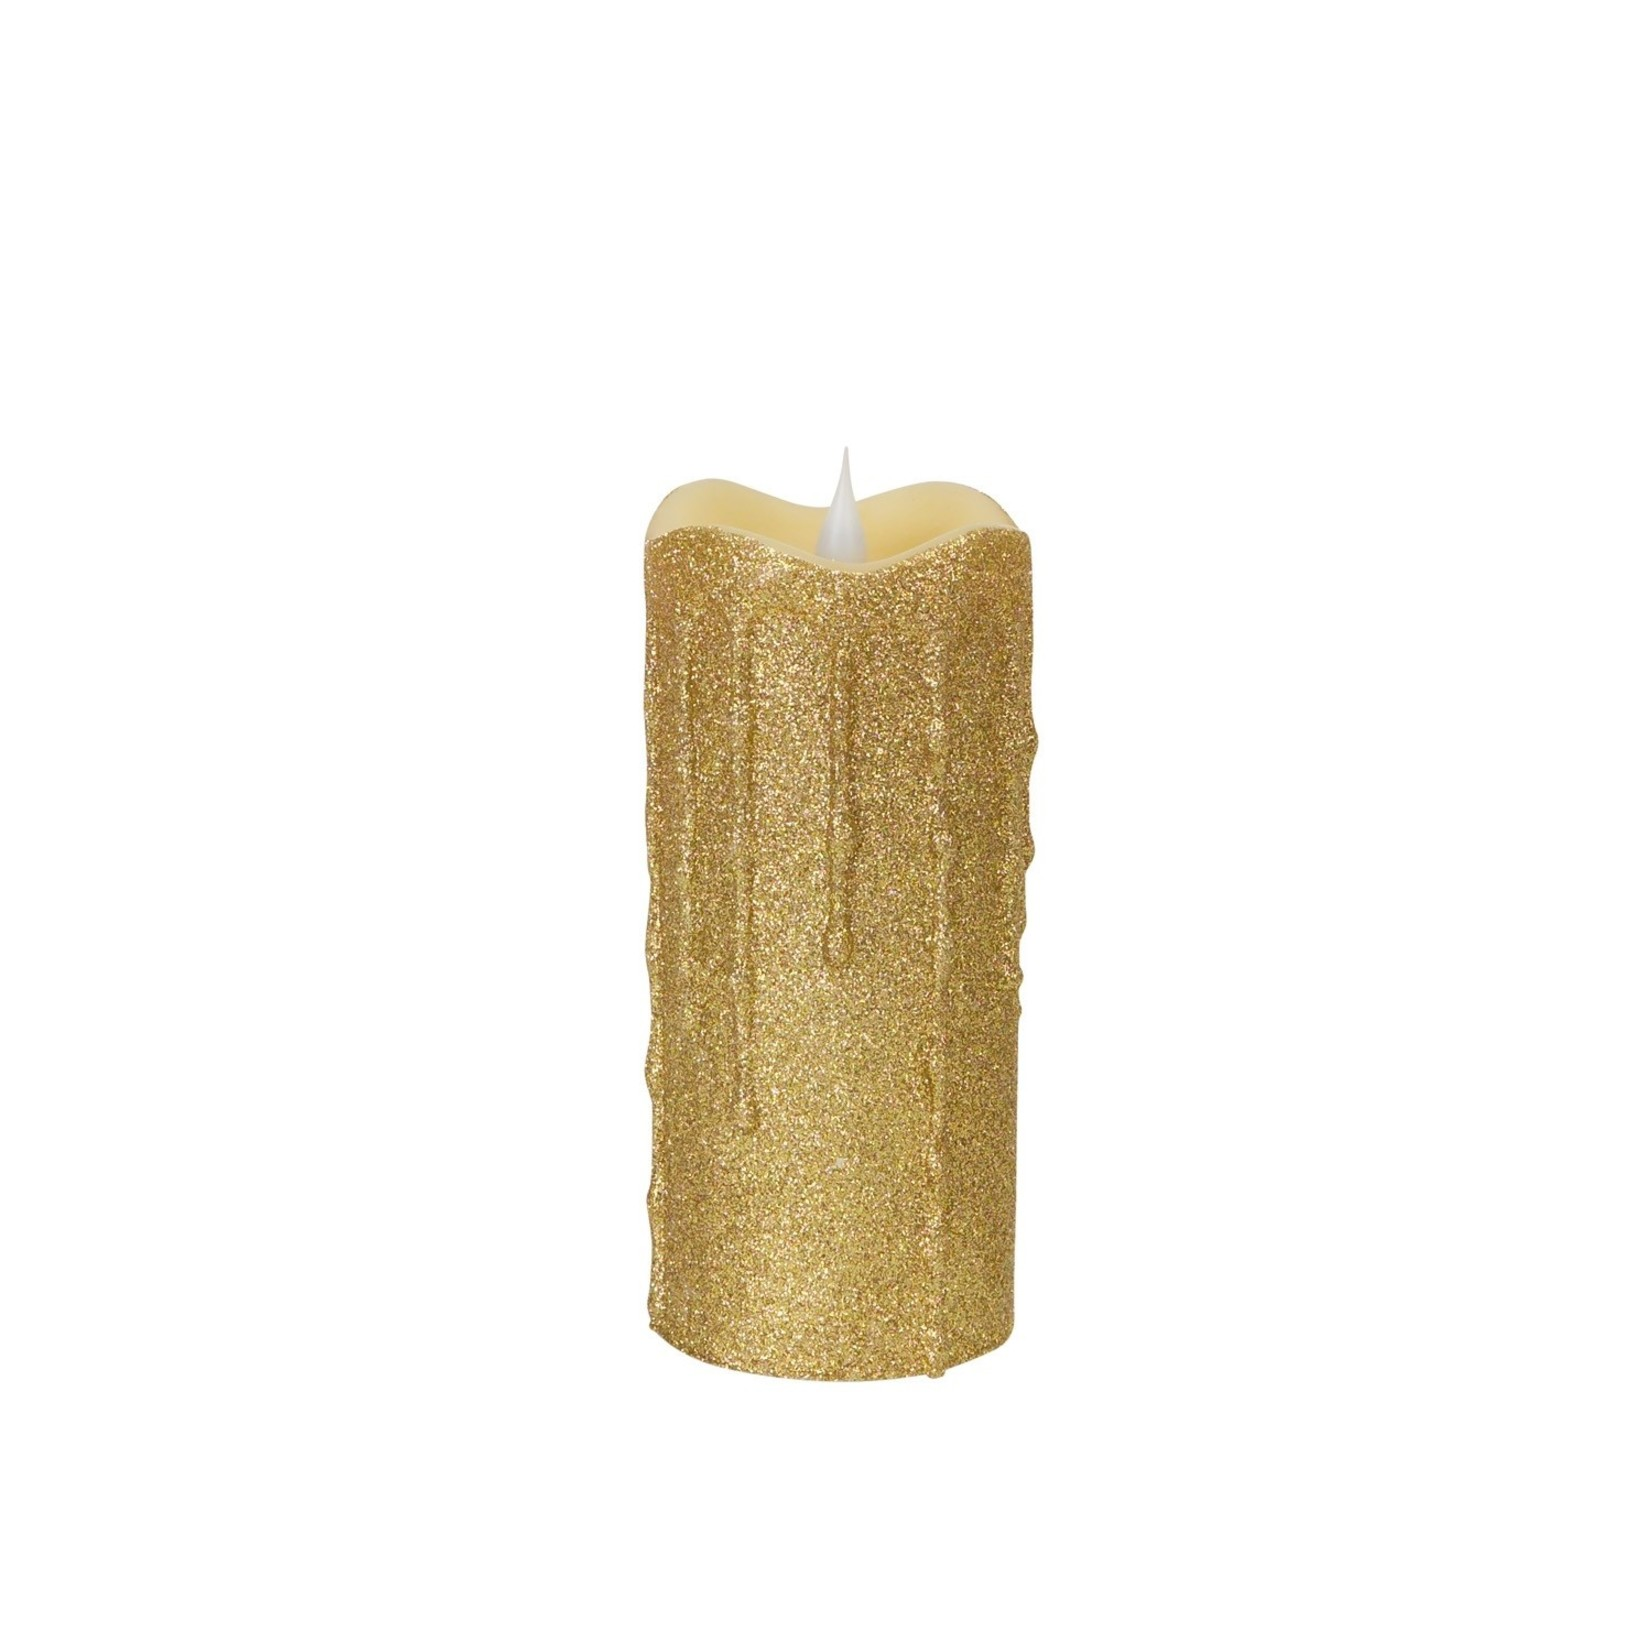 Glittered Dripping candle with moving flame